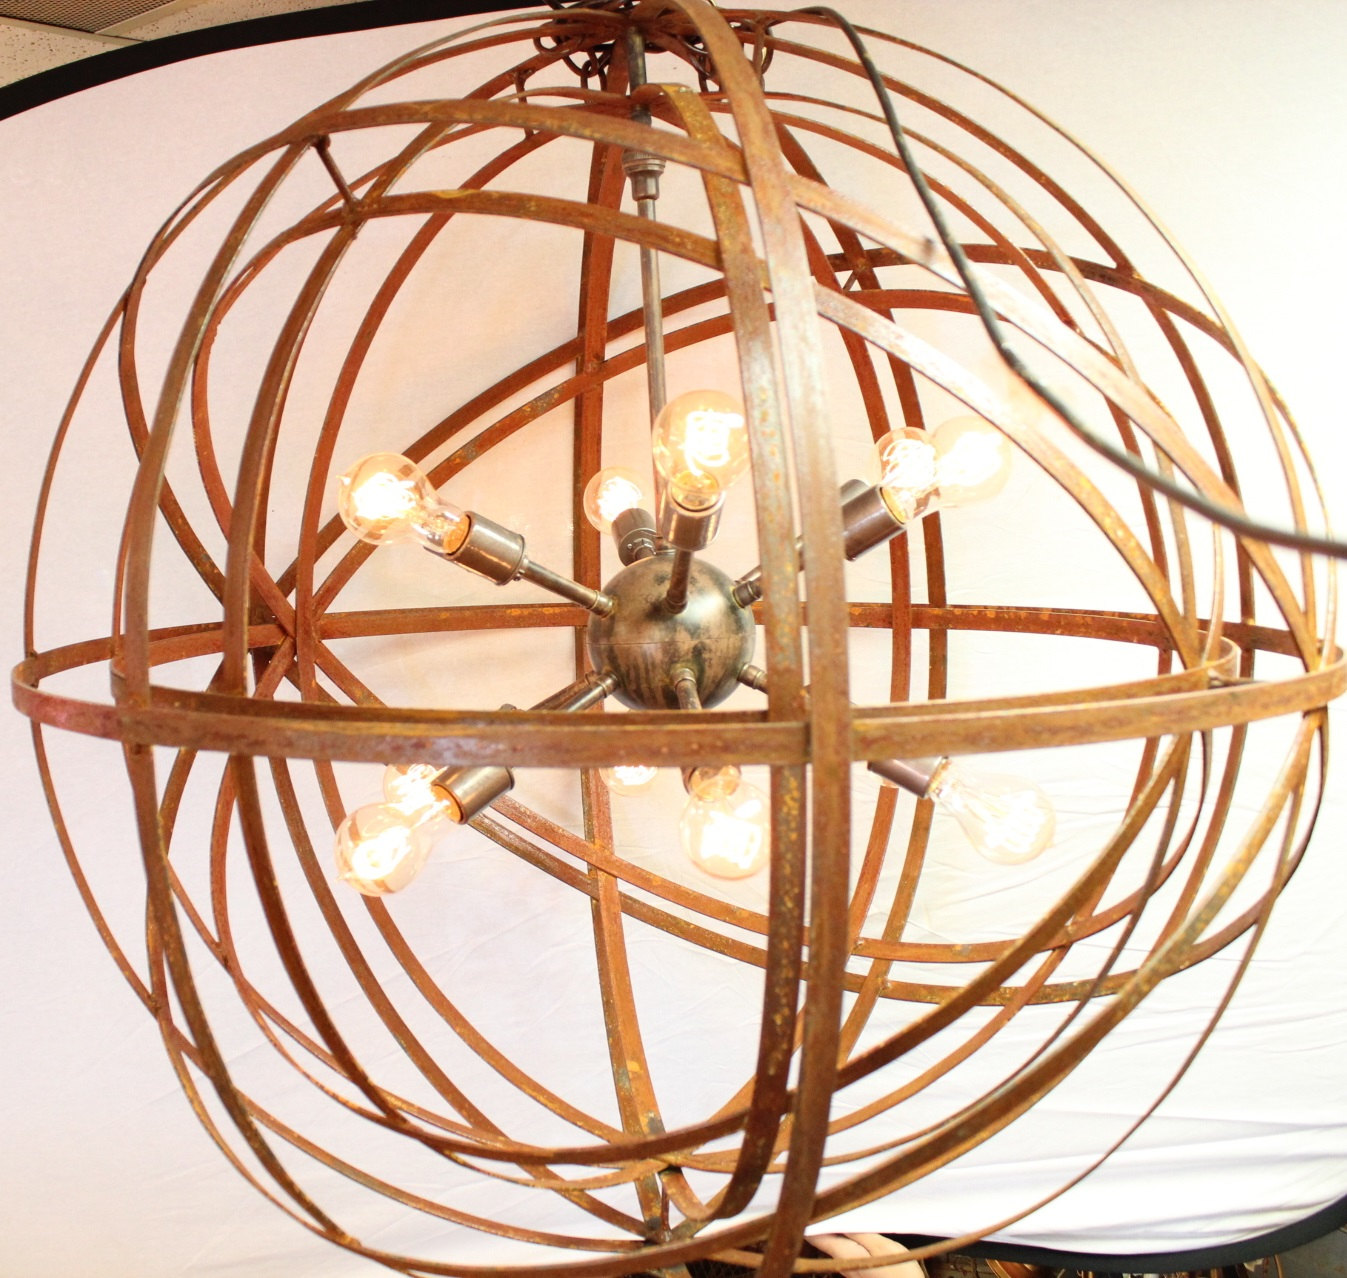 Orb chandelier industrial sphere inside sphere sputnik 30 metal orb chandelier industrial sphere inside sphere sputnik 30 metal strap globe hanging with 12 light sockets mozeypictures Image collections